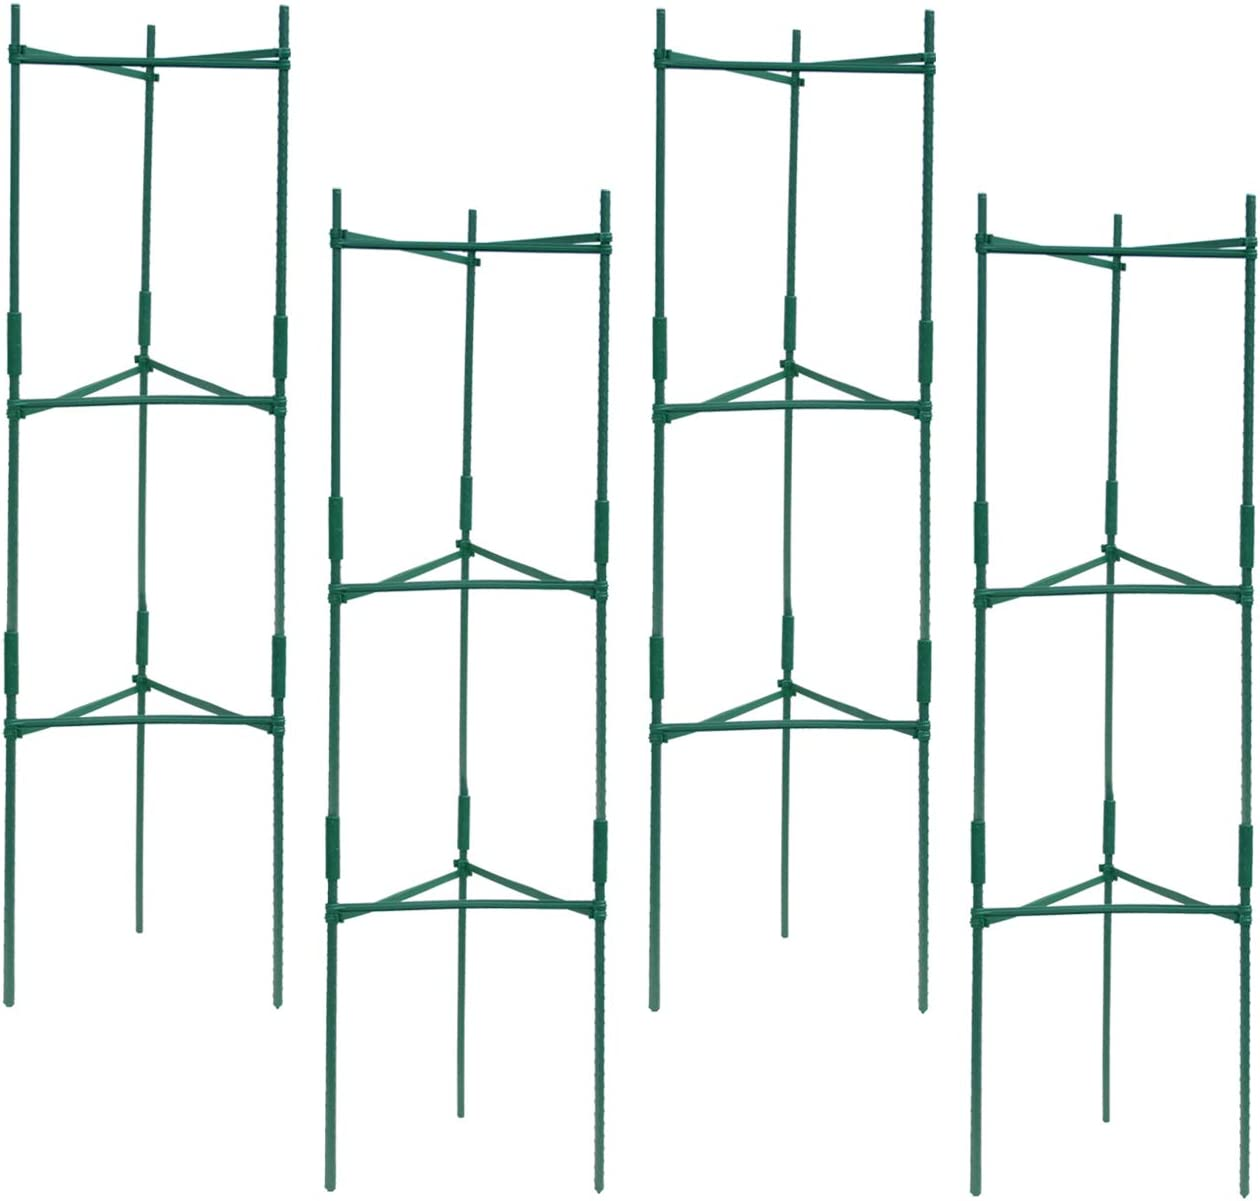 XINCHEN Plant Support Kit, 36PCS Steel Garden Tomato Stakes with 24PCS Rotatable Connection Tube 50PCS Metallic Twist Tie 4PCS Self Watering Spikes for Climb Plant